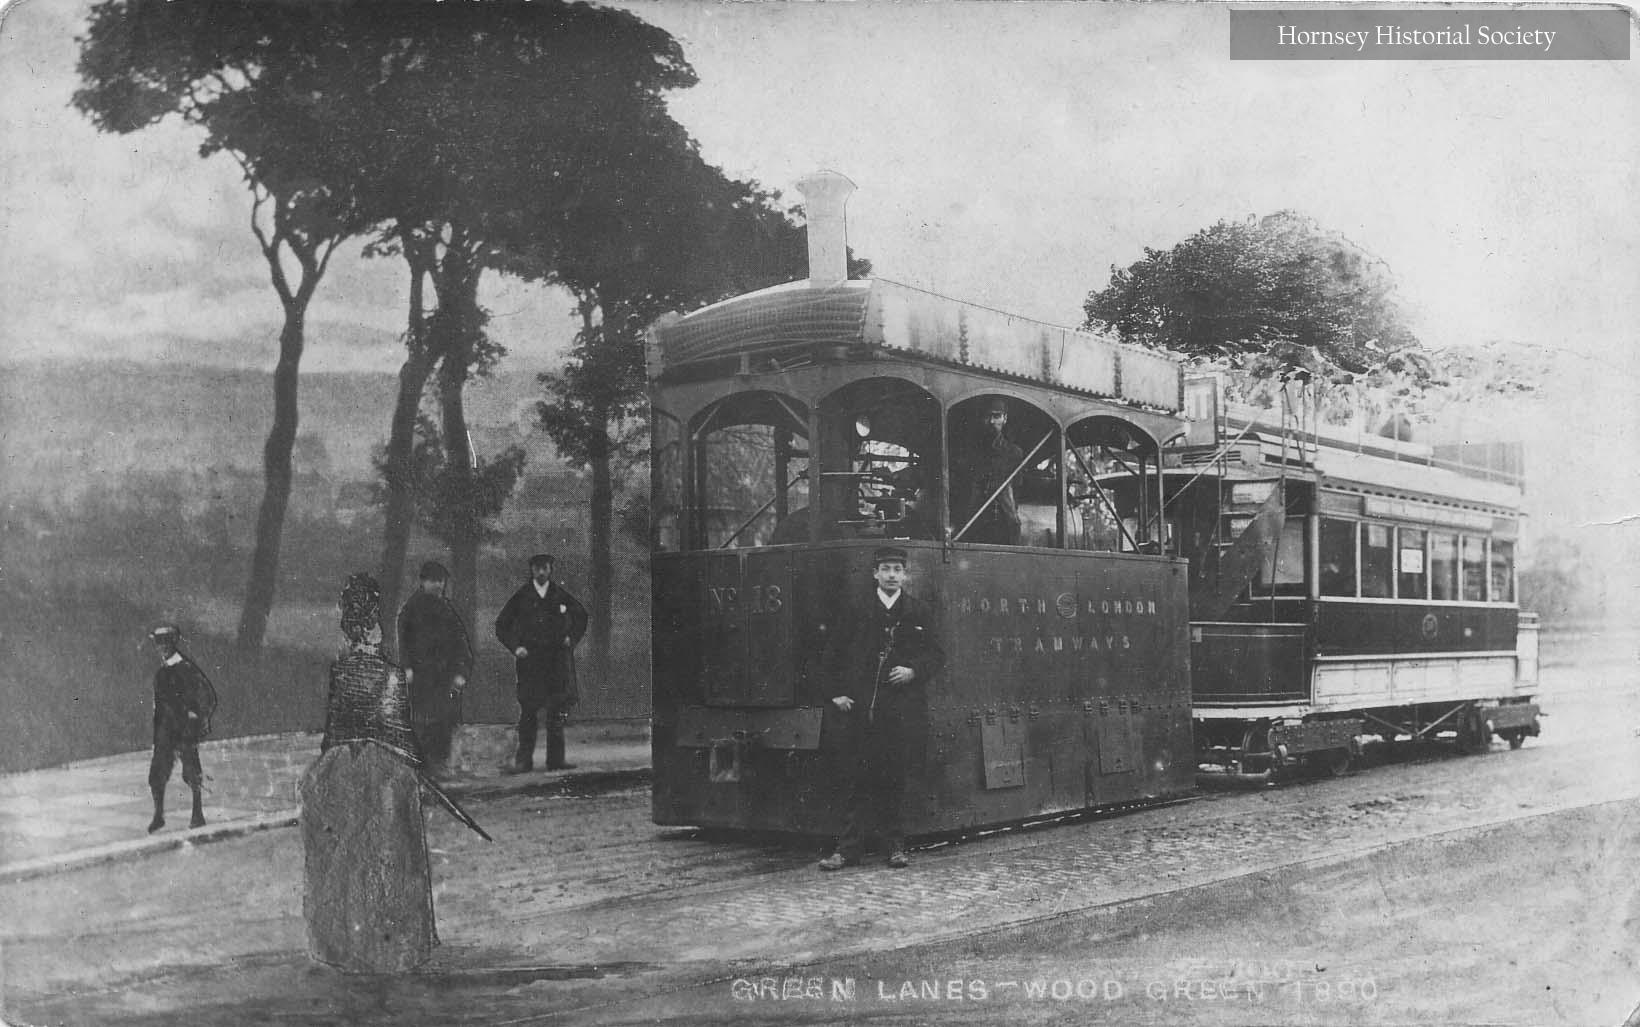 Green Lanes steam tram at Duckett's Common, 1889